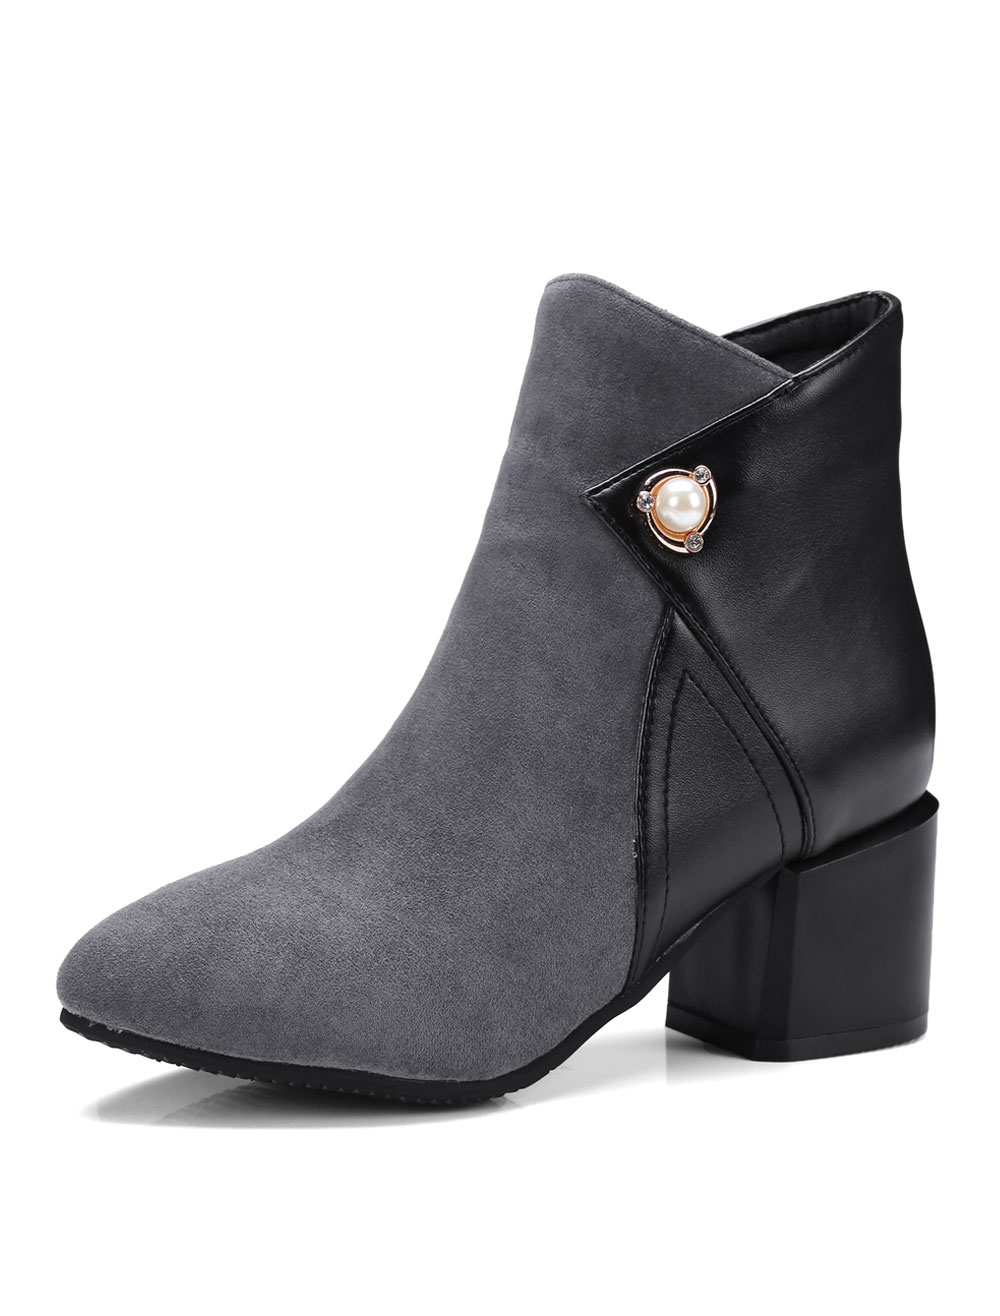 Buy Grey Ankle Boots Pointed Toe Chunky Heel Two Tone Suede Pearls Winter Booties For Women for $35.99 in Milanoo store